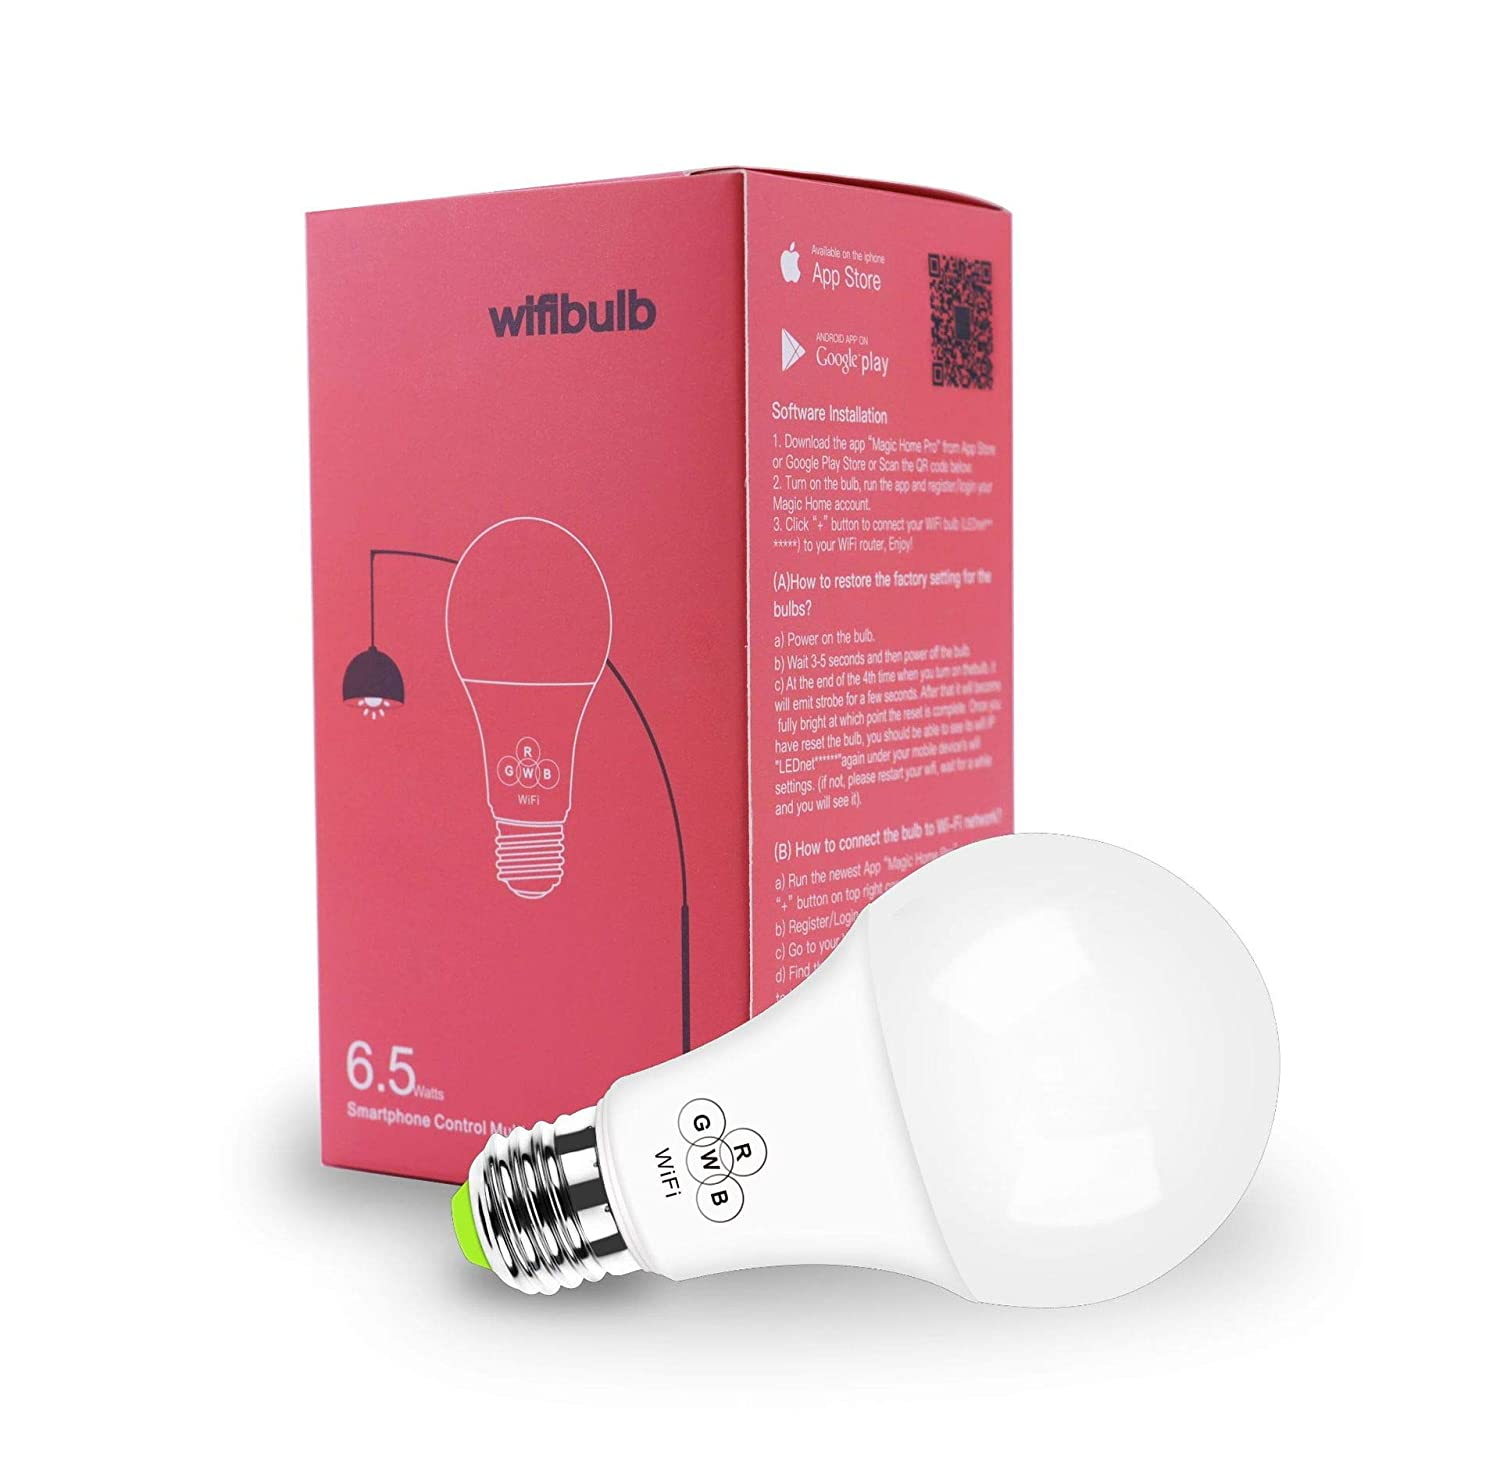 Multicolored led Light Bulb, RGBW Wi-Fi LED Bulb 6.5W 500LM Dimmable Smart Light Bulb, 6500K RGBM, Compatible with Alexa,Amazon Echo and Google Home 2pcs